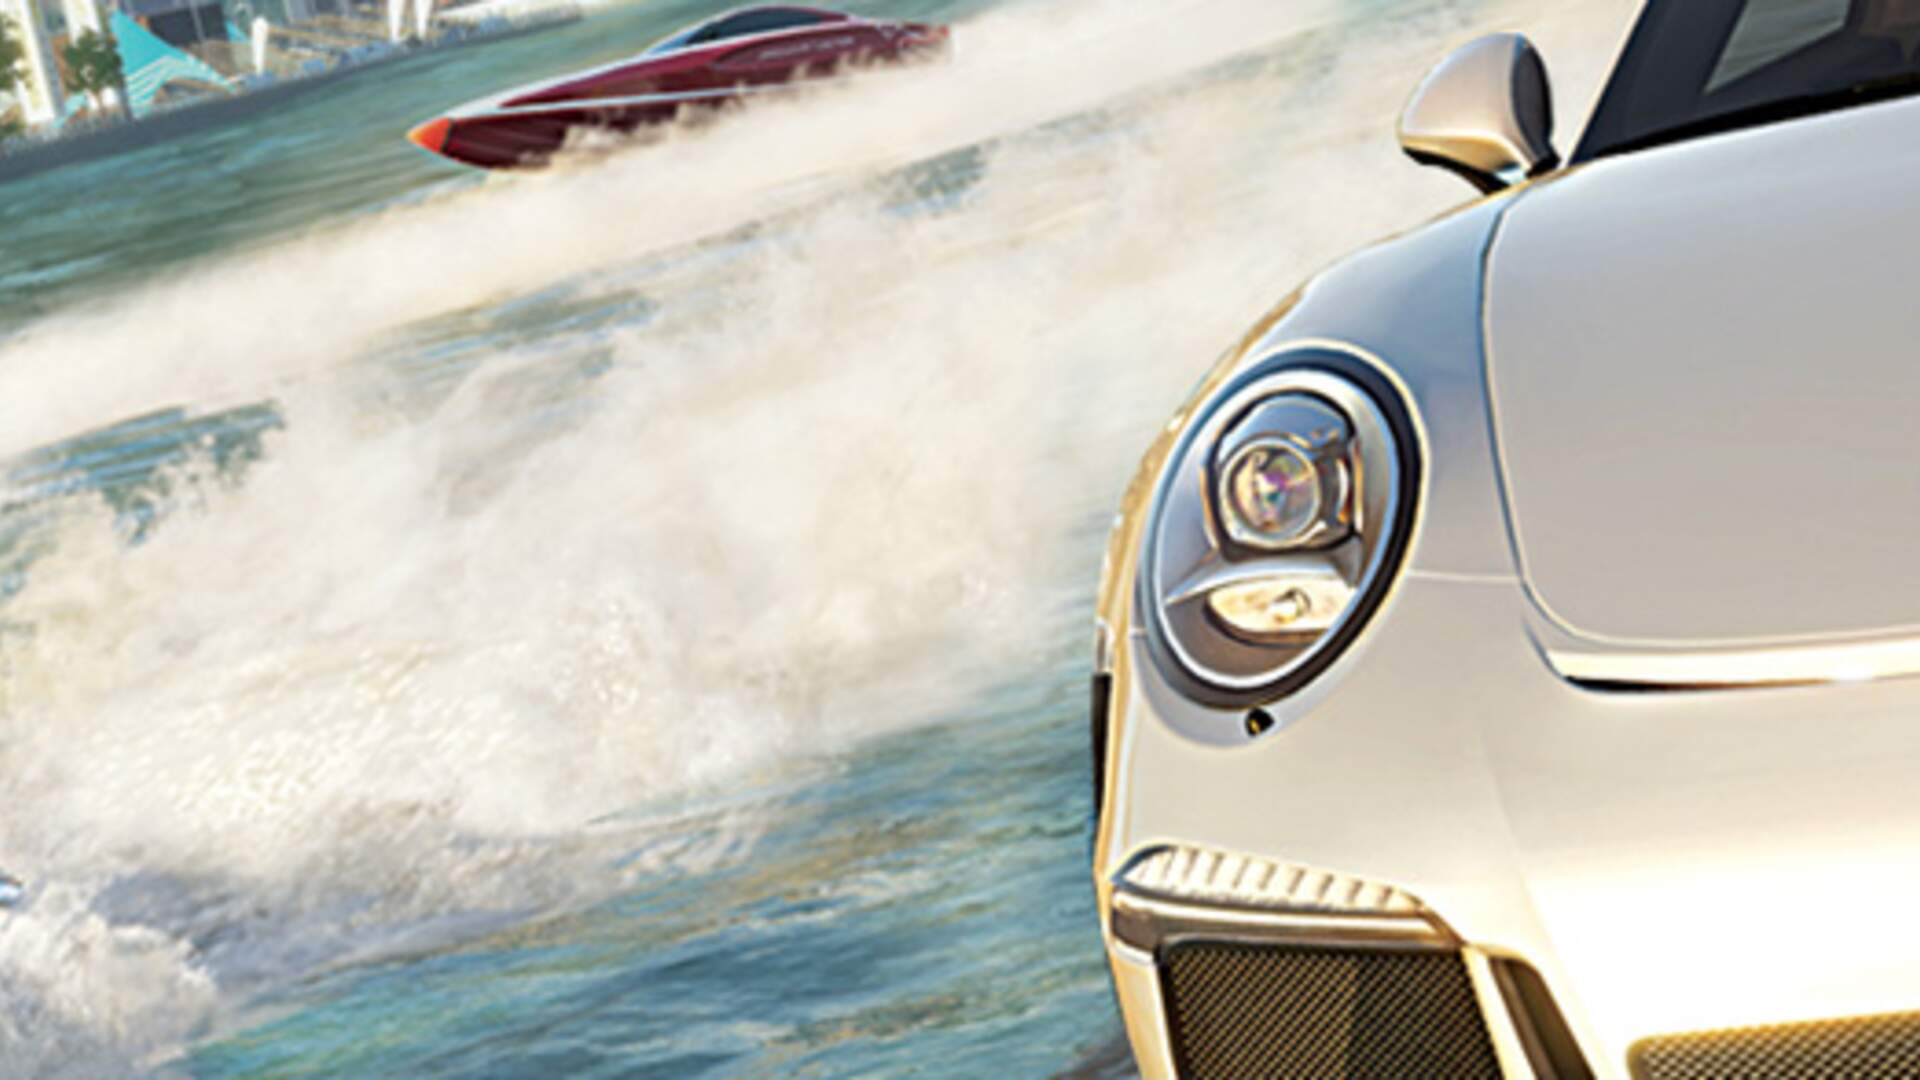 The Crew 2 Bucks - How to Get Money Fast in The Crew 2